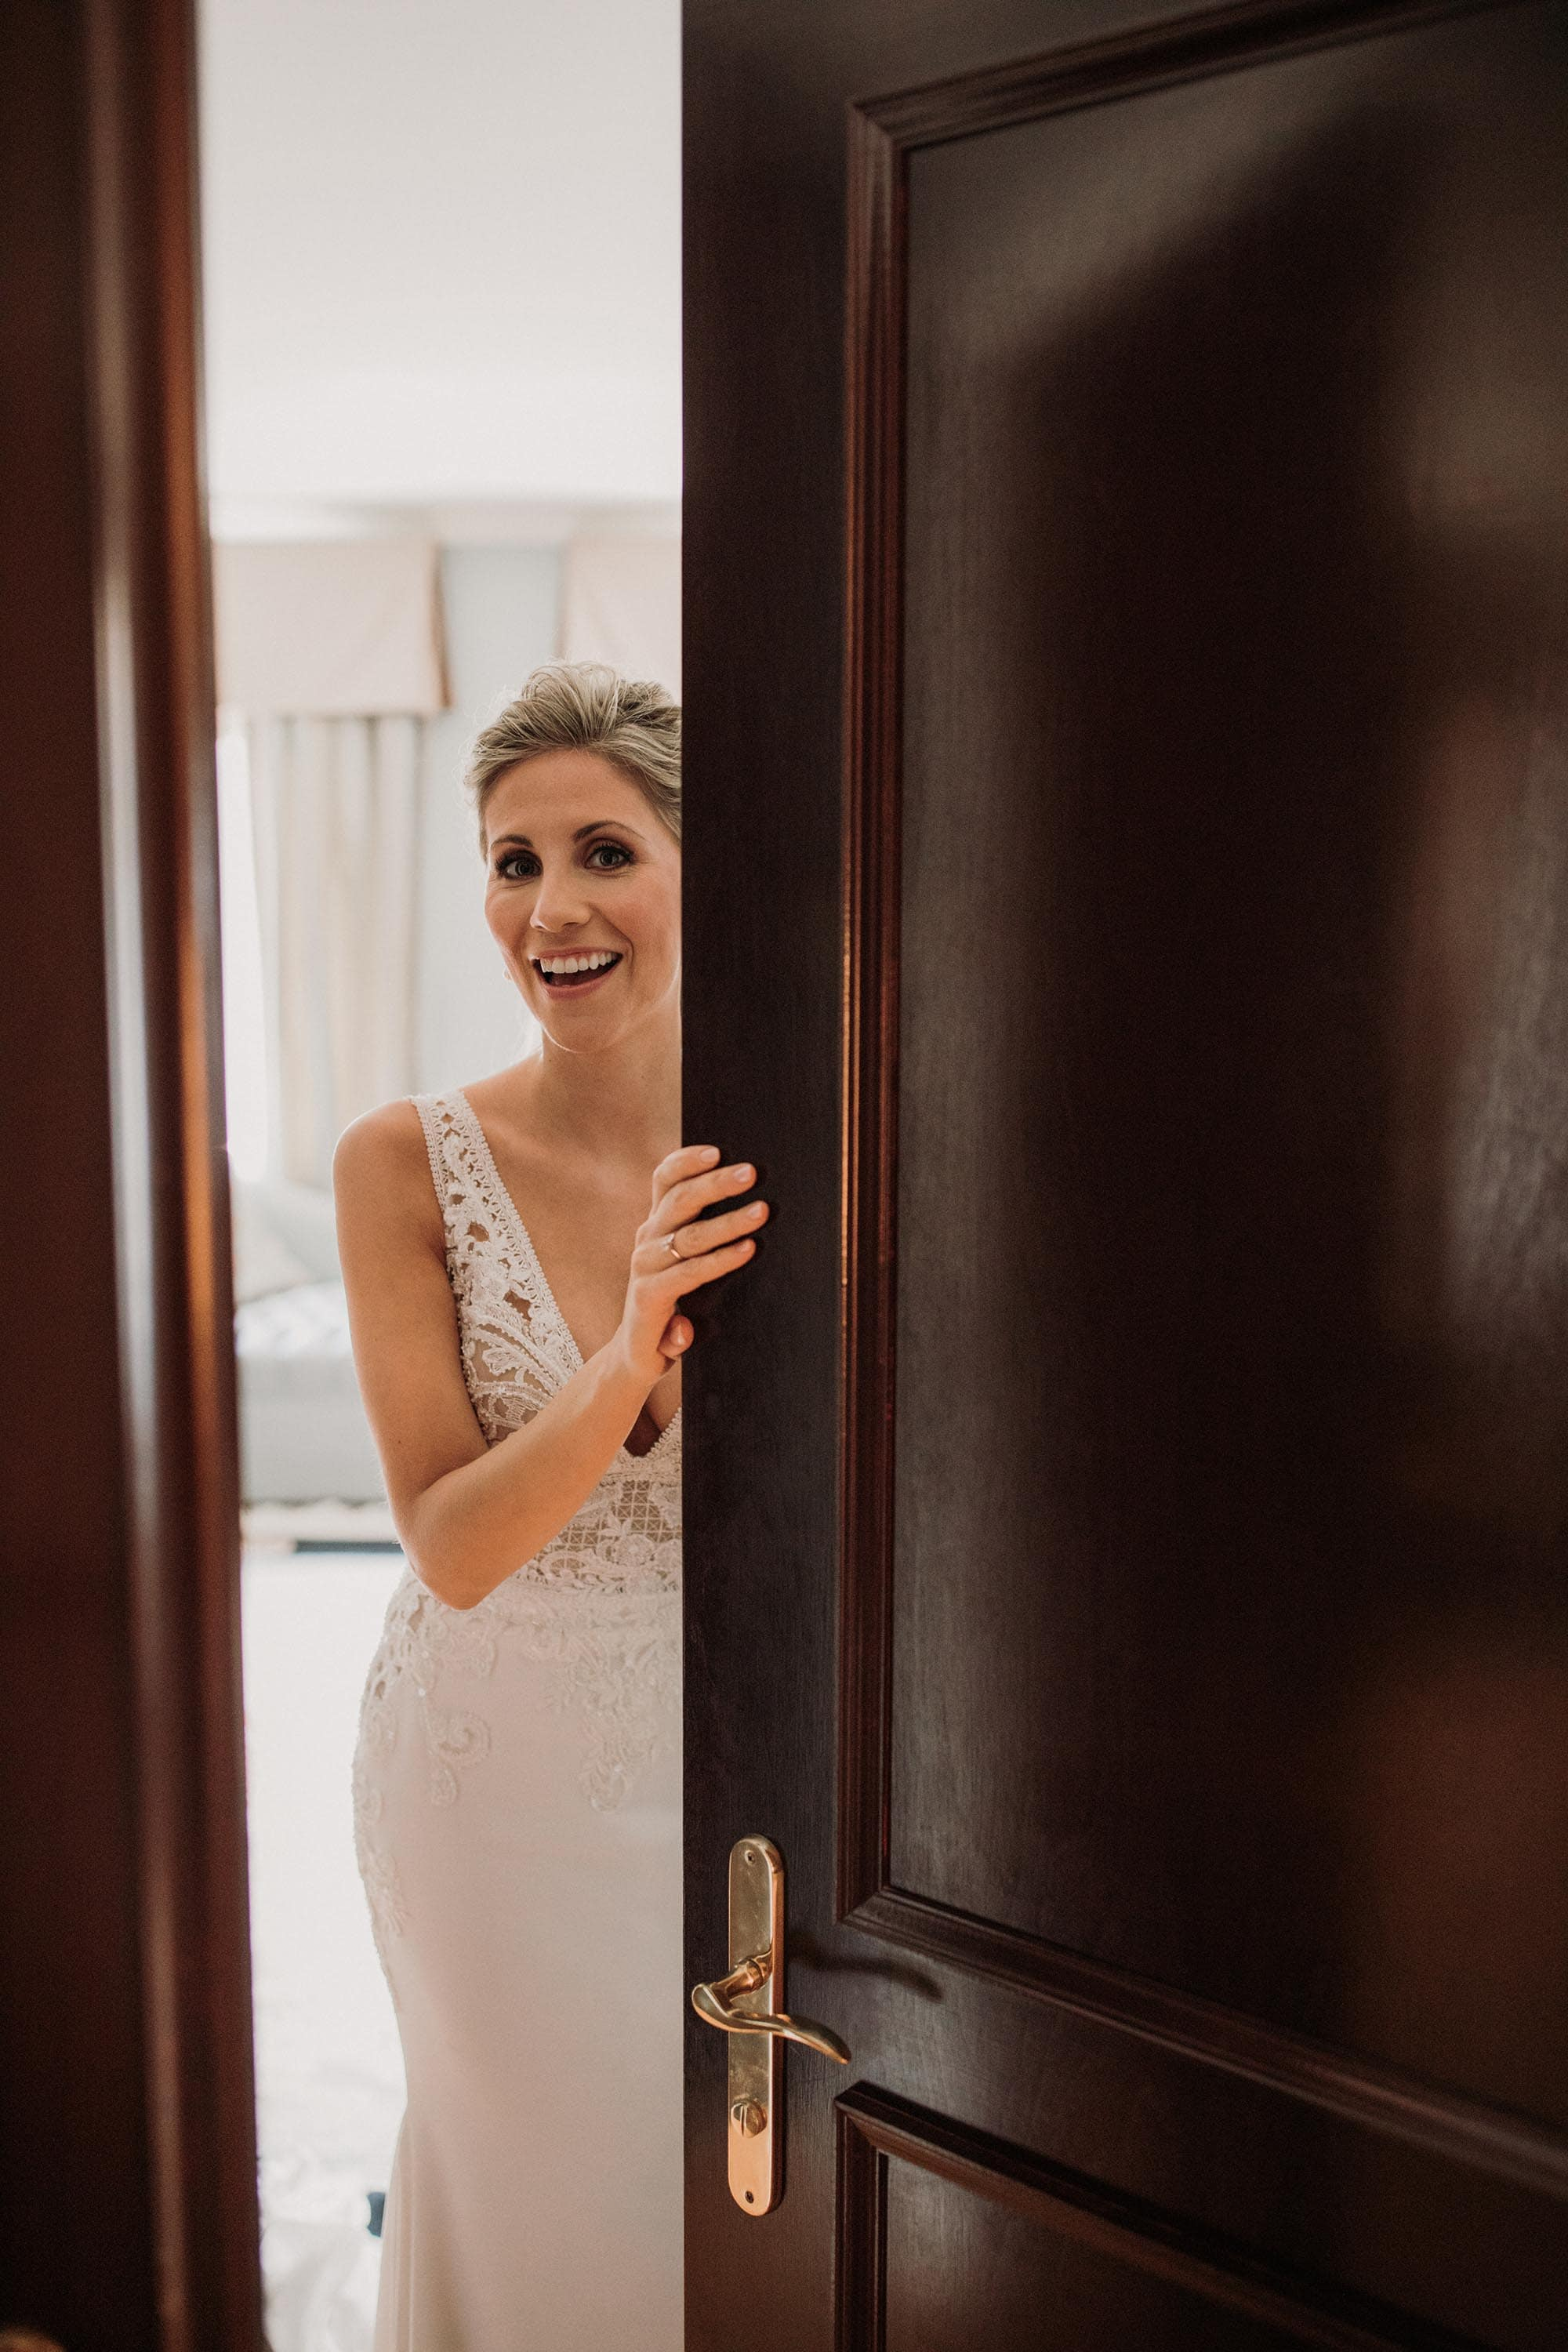 Entrepots Dominion Wedding In Montreal - Bride in doorway - Wedding Photographer Brent Calis